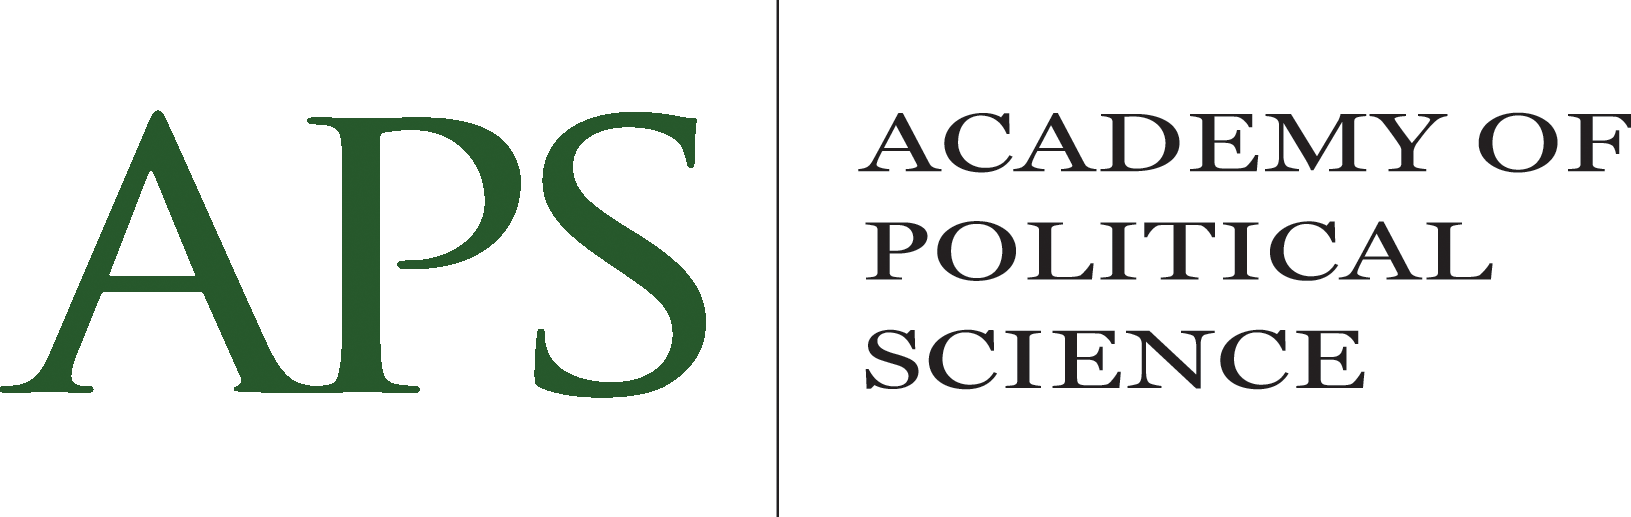 Academy of Political Science